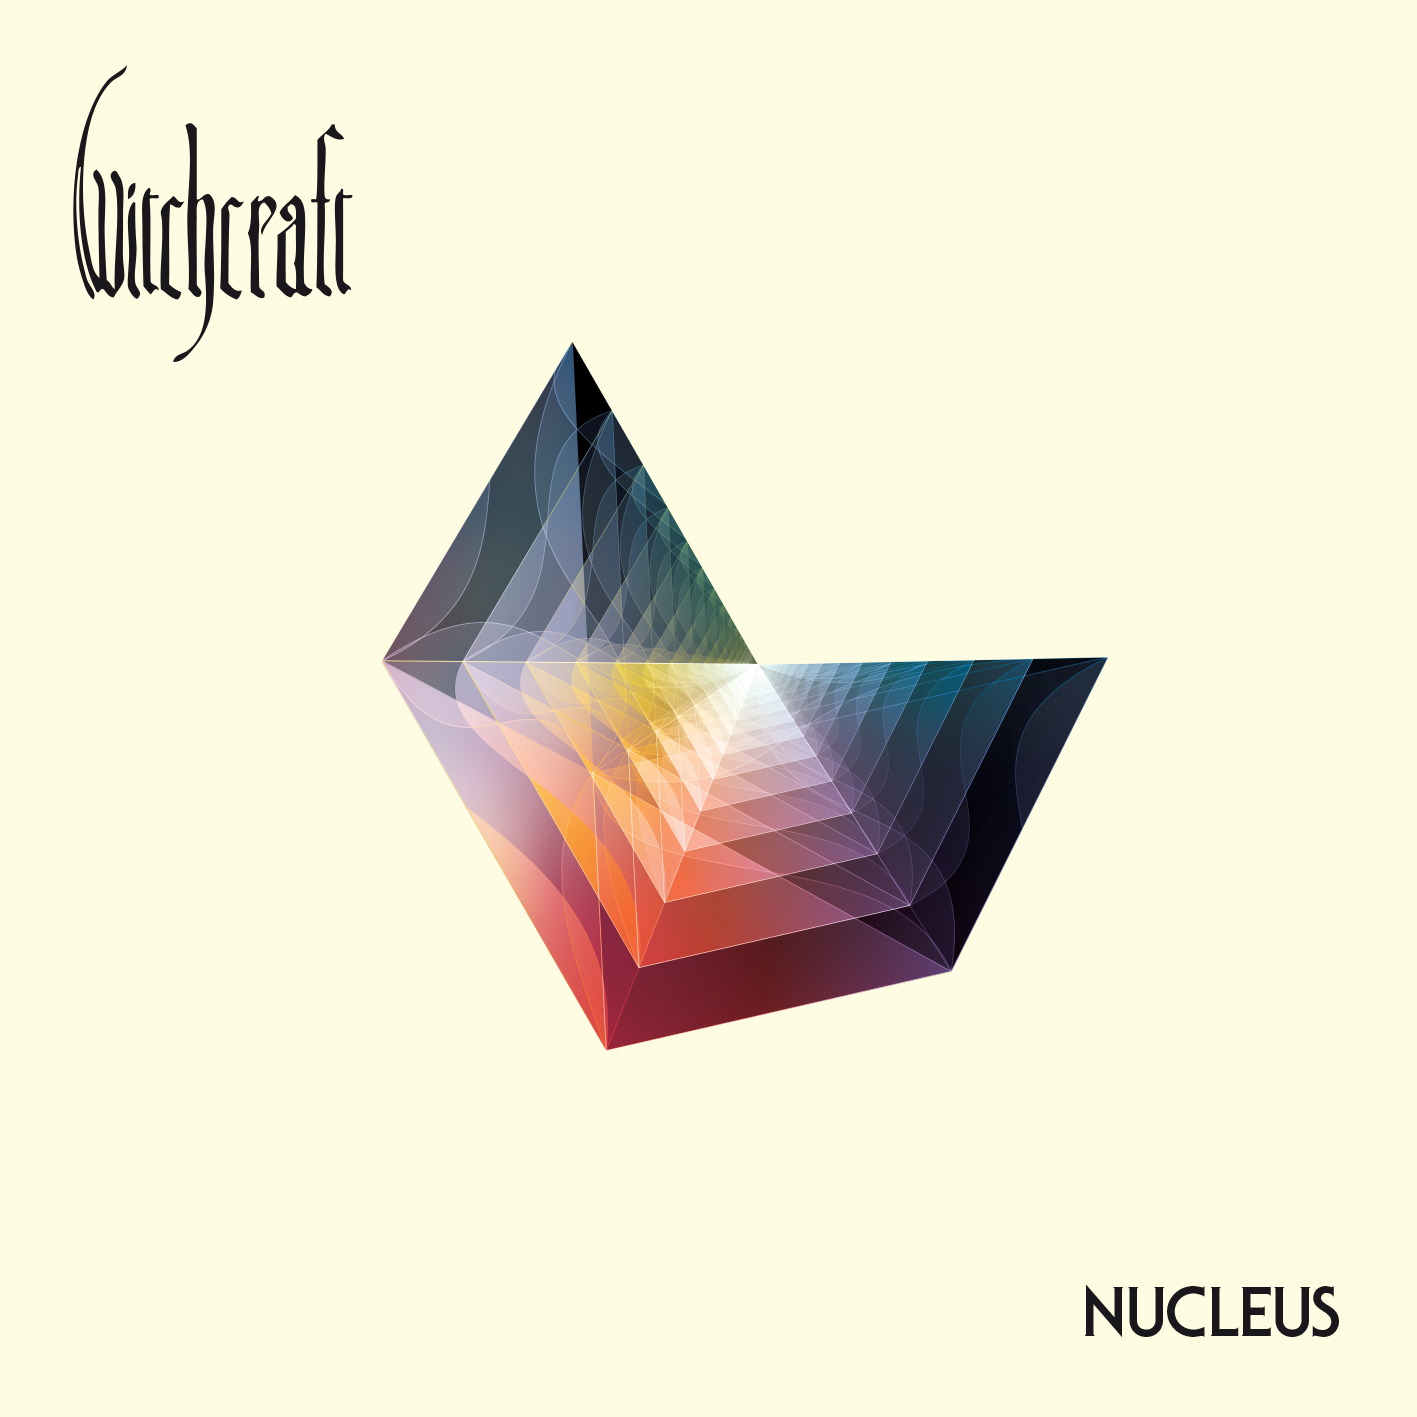 witchcraft-nucleus.jpg